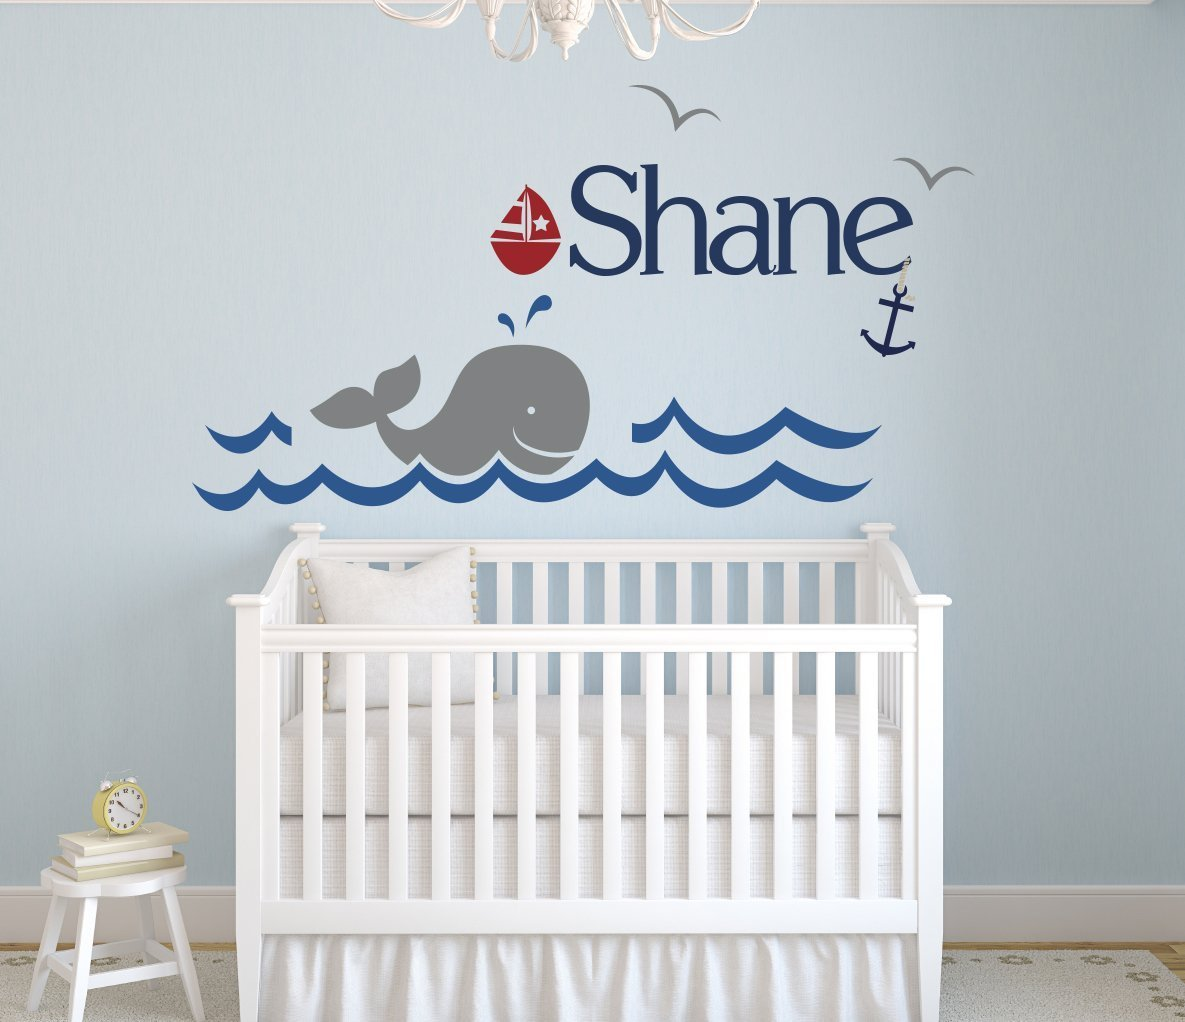 Amazon custom whale name wall decal boys kids room decor amazon custom whale name wall decal boys kids room decor nursery wall decals nautical wall decor 40wx22h baby amipublicfo Choice Image